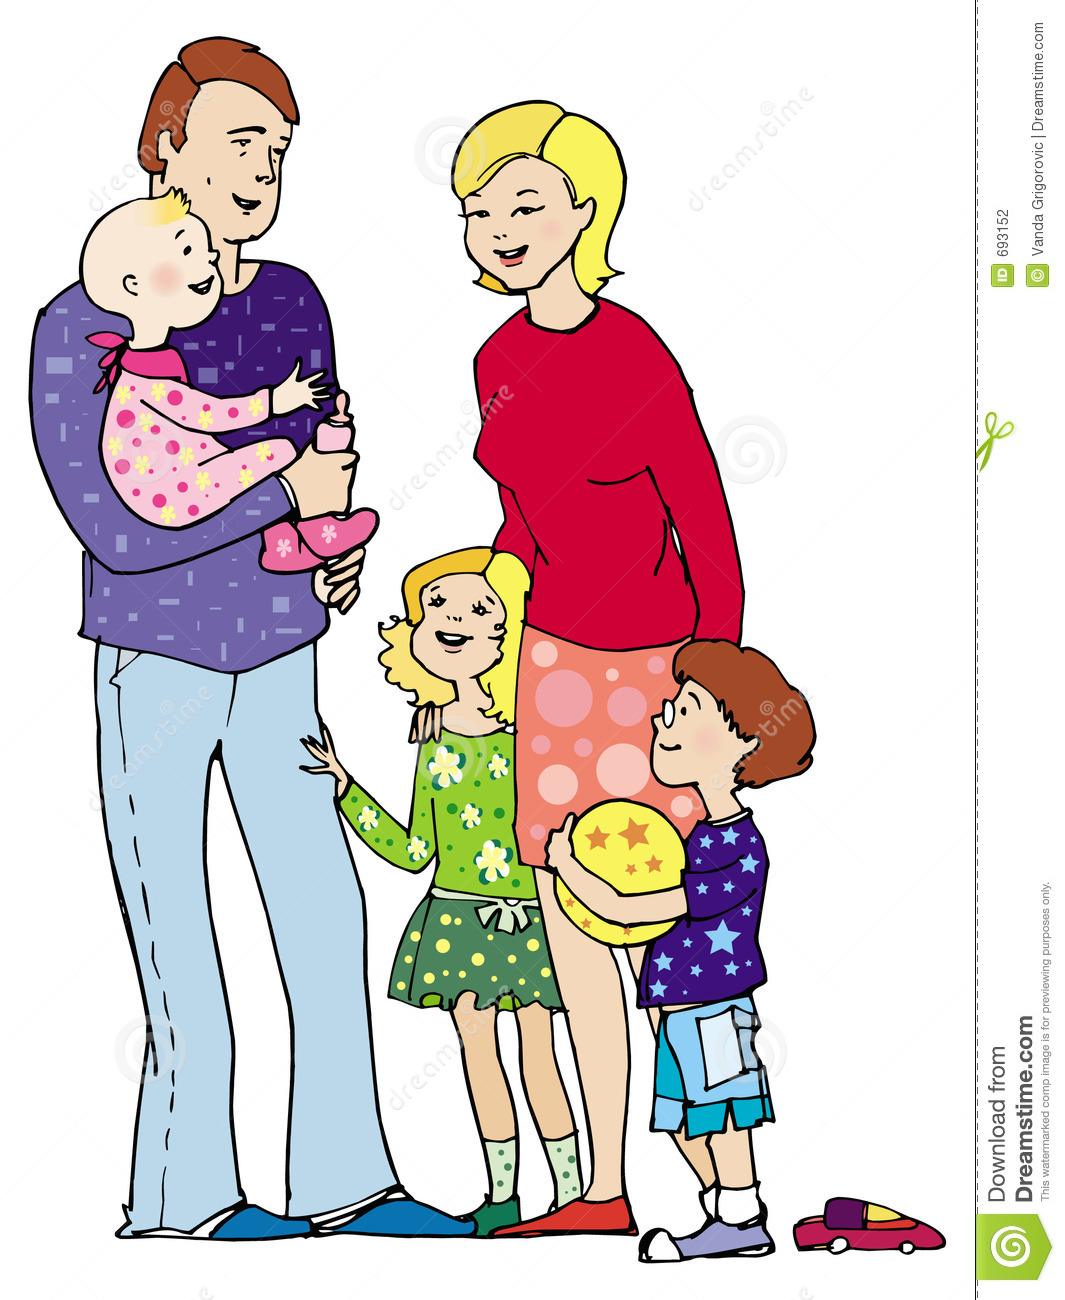 family business clipart - photo #32